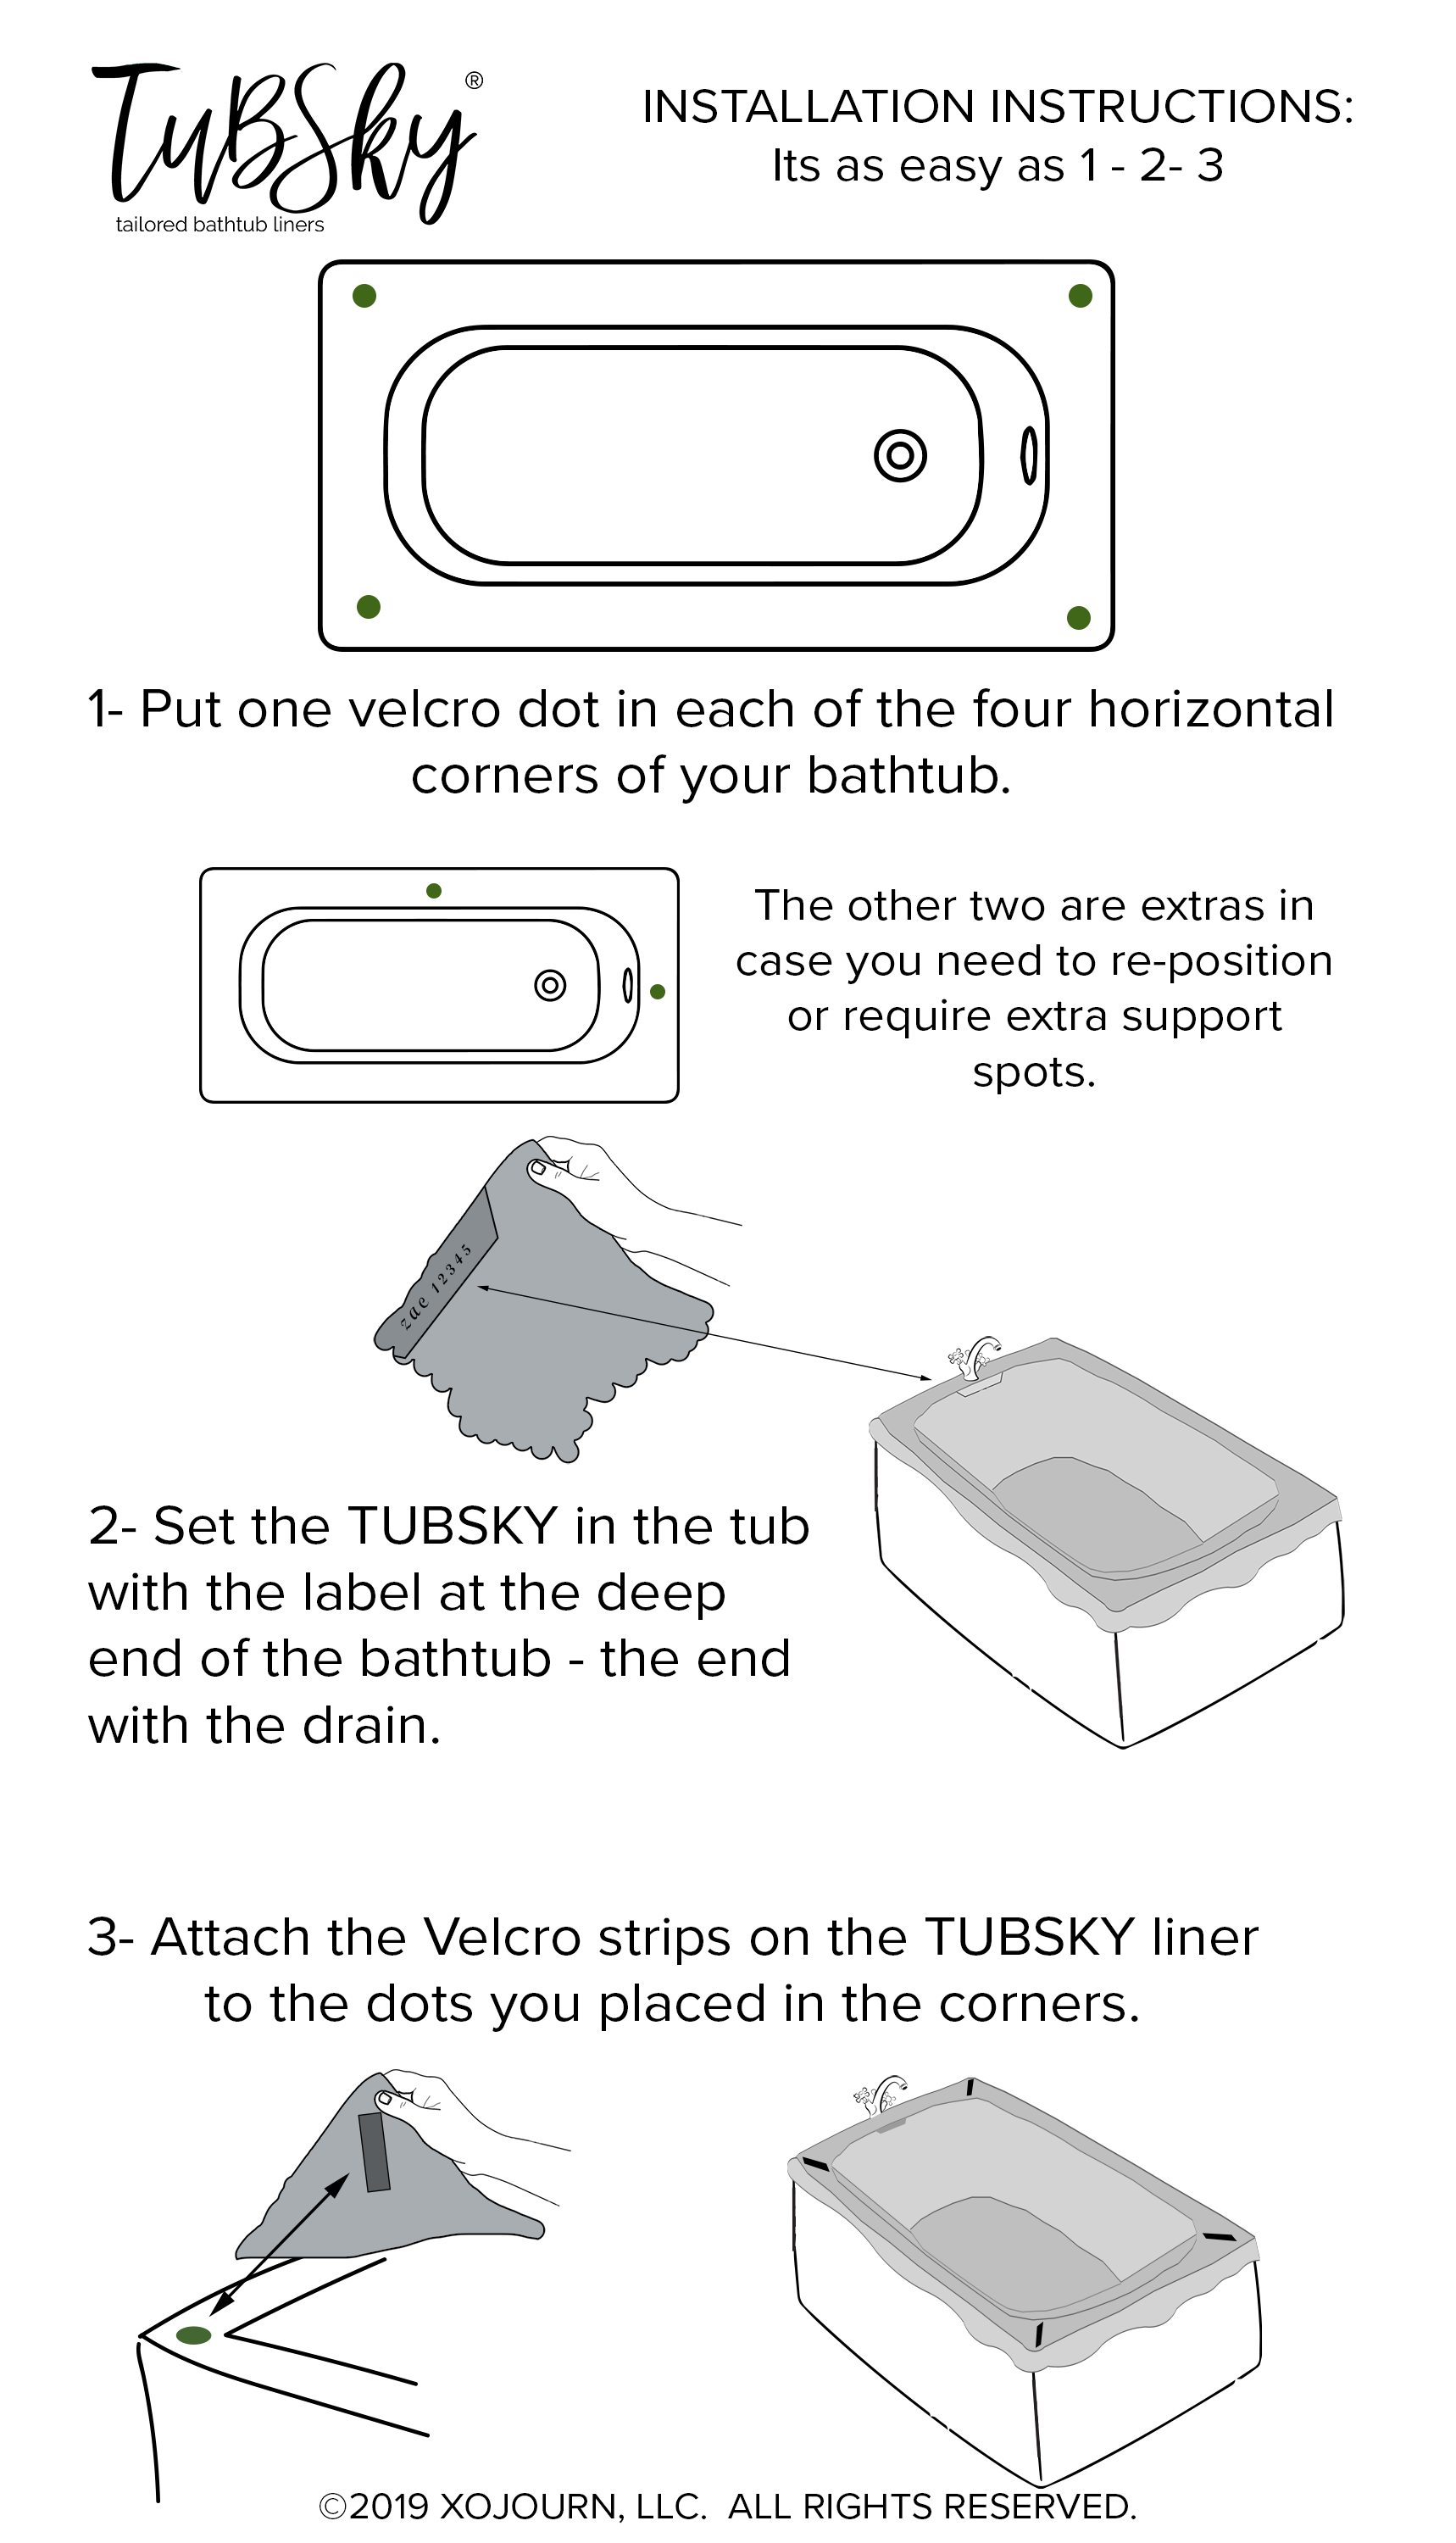 tubsky-installation-instructions.png